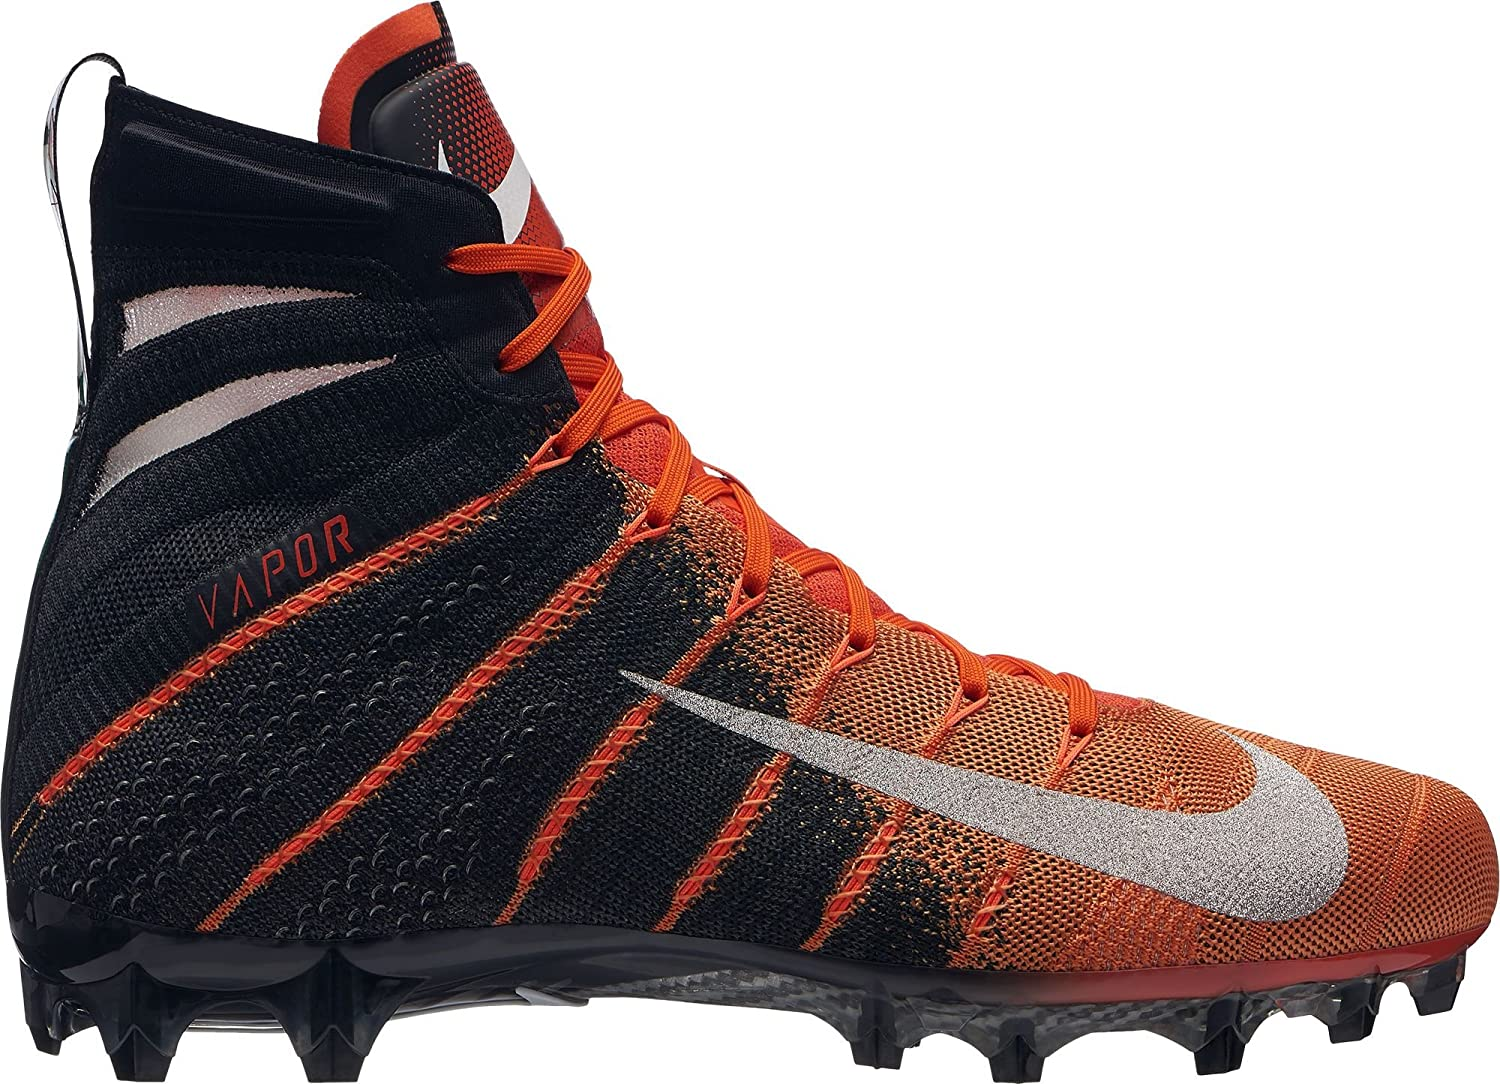 ナイキ メンズ スニーカー Nike Men's Vapor Untouchable 3 Elite Foo [並行輸入品] B07CMZ447Y